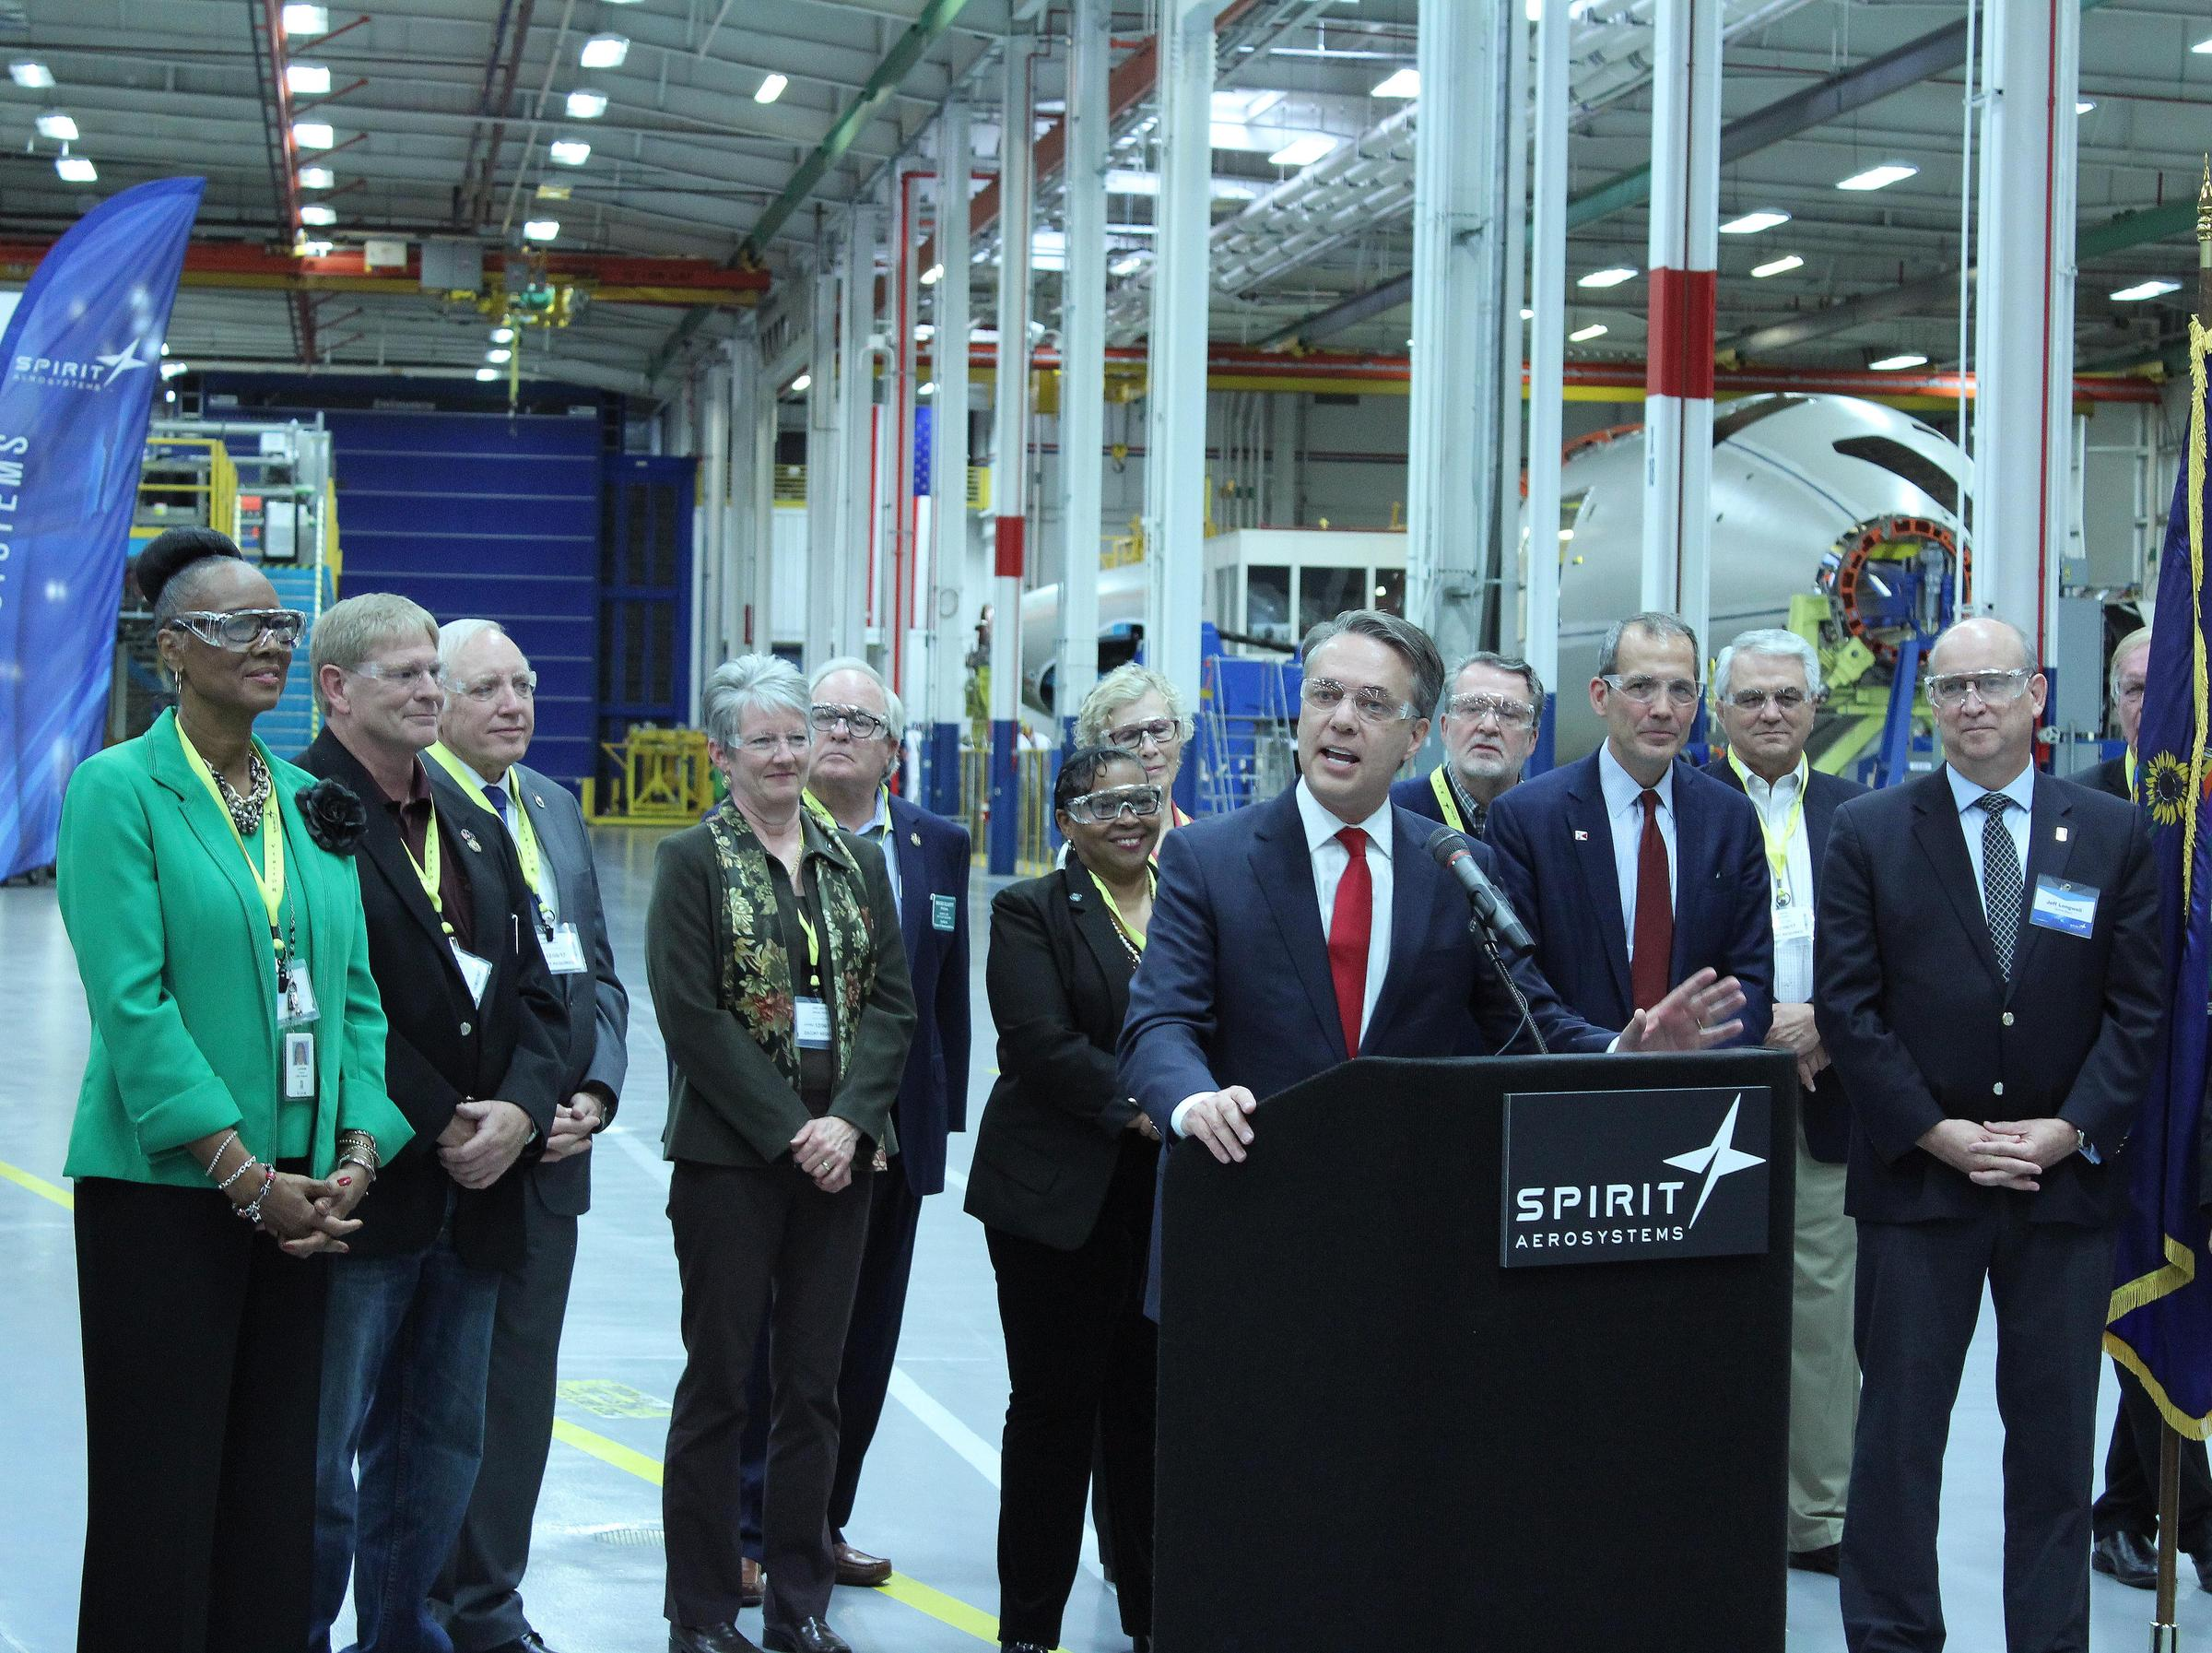 Kansas Lt. Gov. Jeff Colyer speaks at an event Wednesday announcing Spirit Aerosystem's plans to expand its operations in Wichita adding about 1,000 new jobs